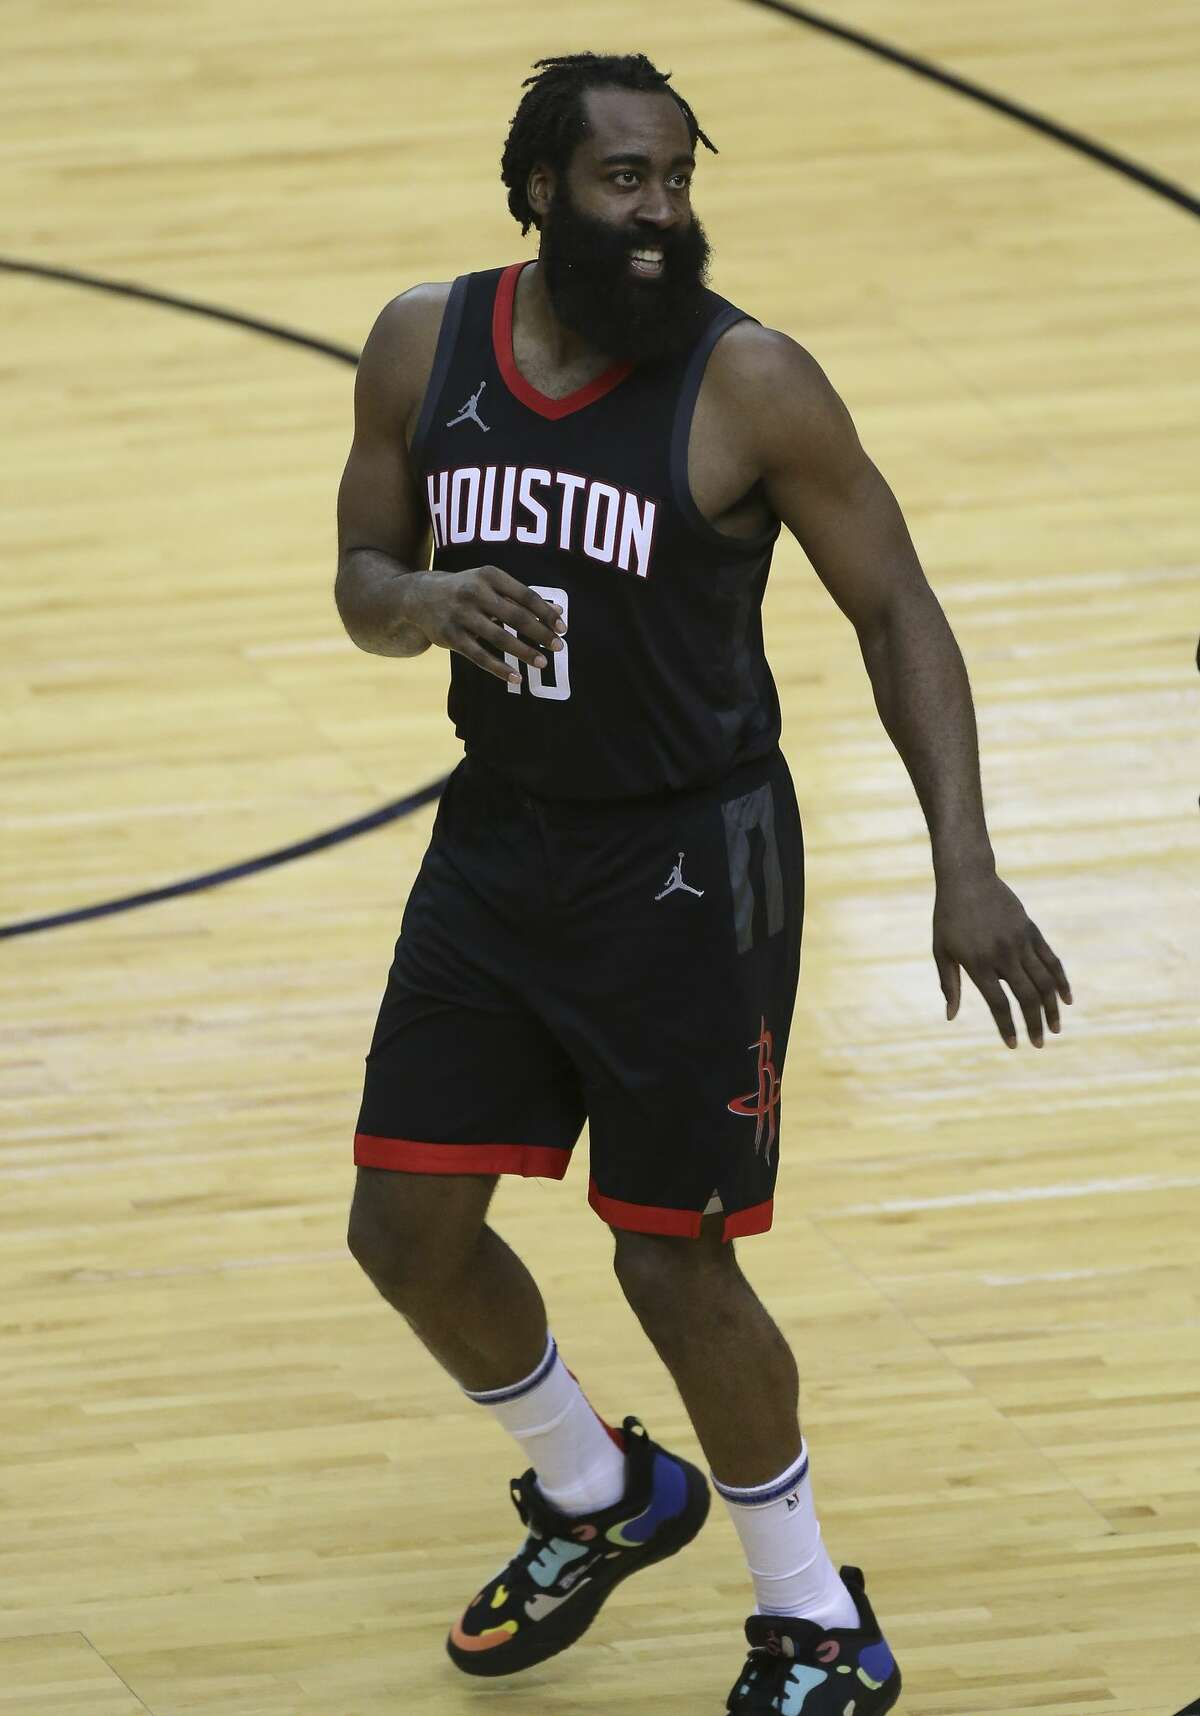 Houston Rockets guard James Harden (13) smiles after scoring a shot during the fourth quarter of a NBA game against the Dallas Mavericks Monday, Jan. 4, 2021, at Toyota Center in Houston.